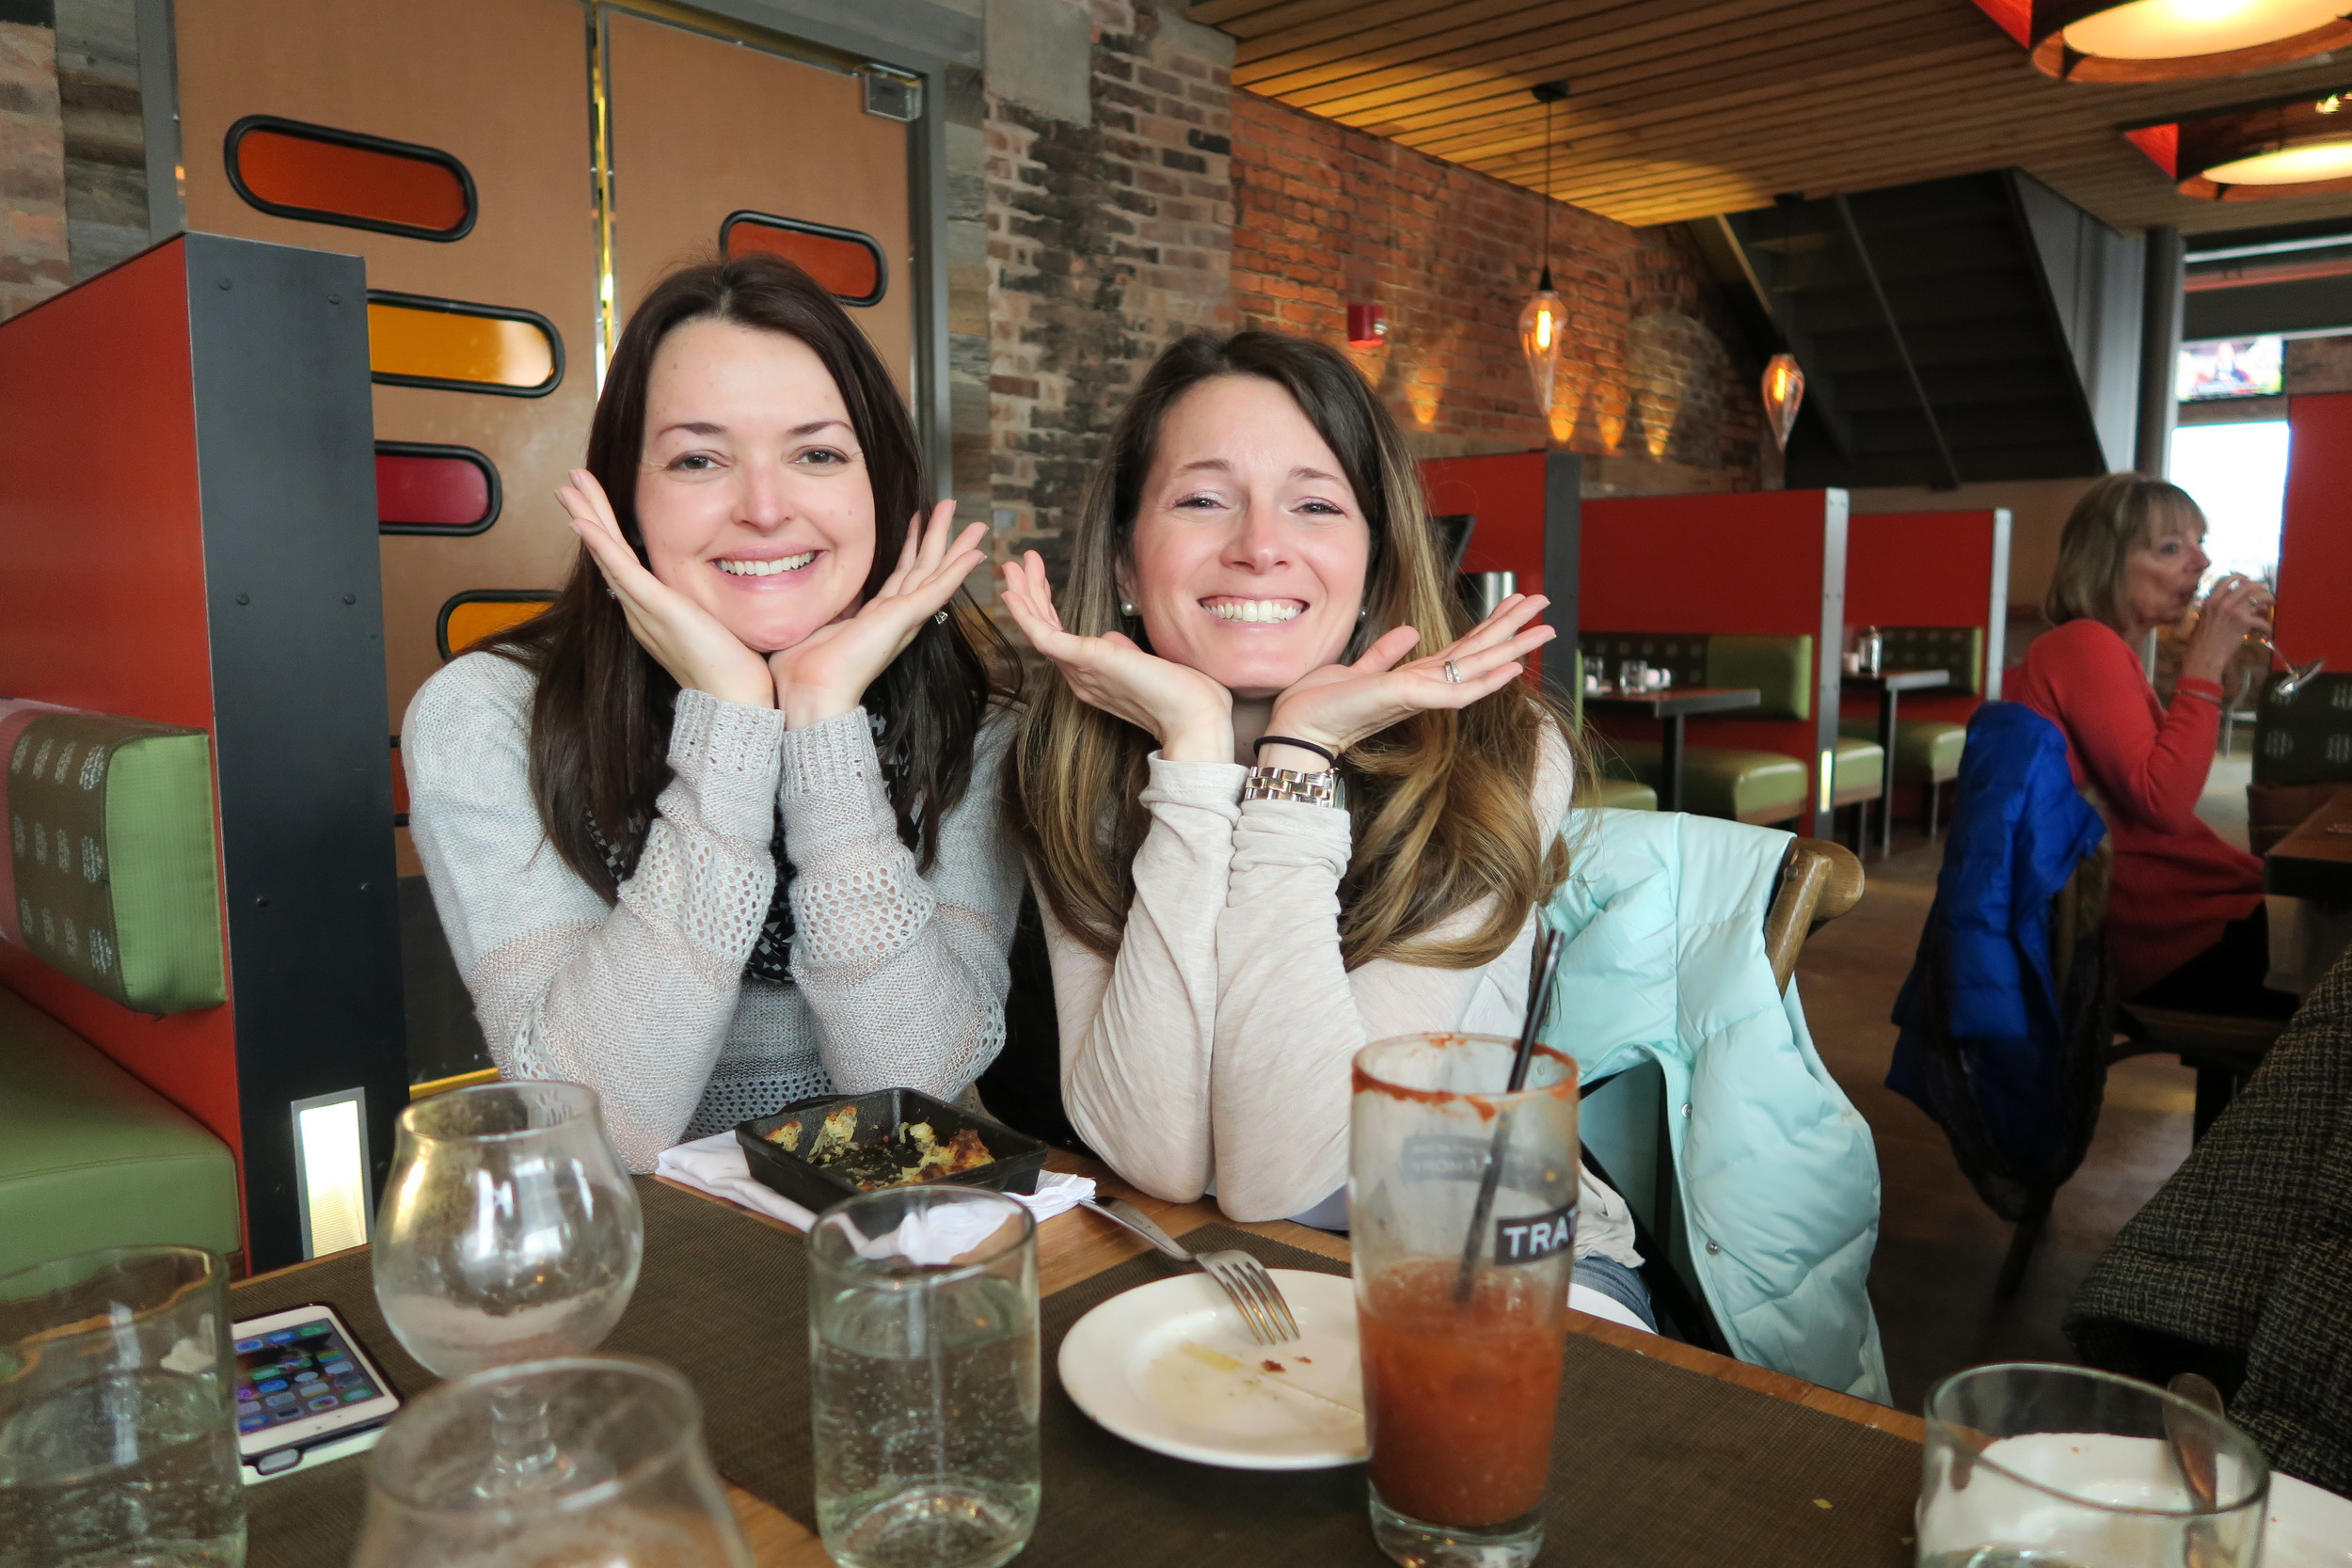 Brunches are better with friends